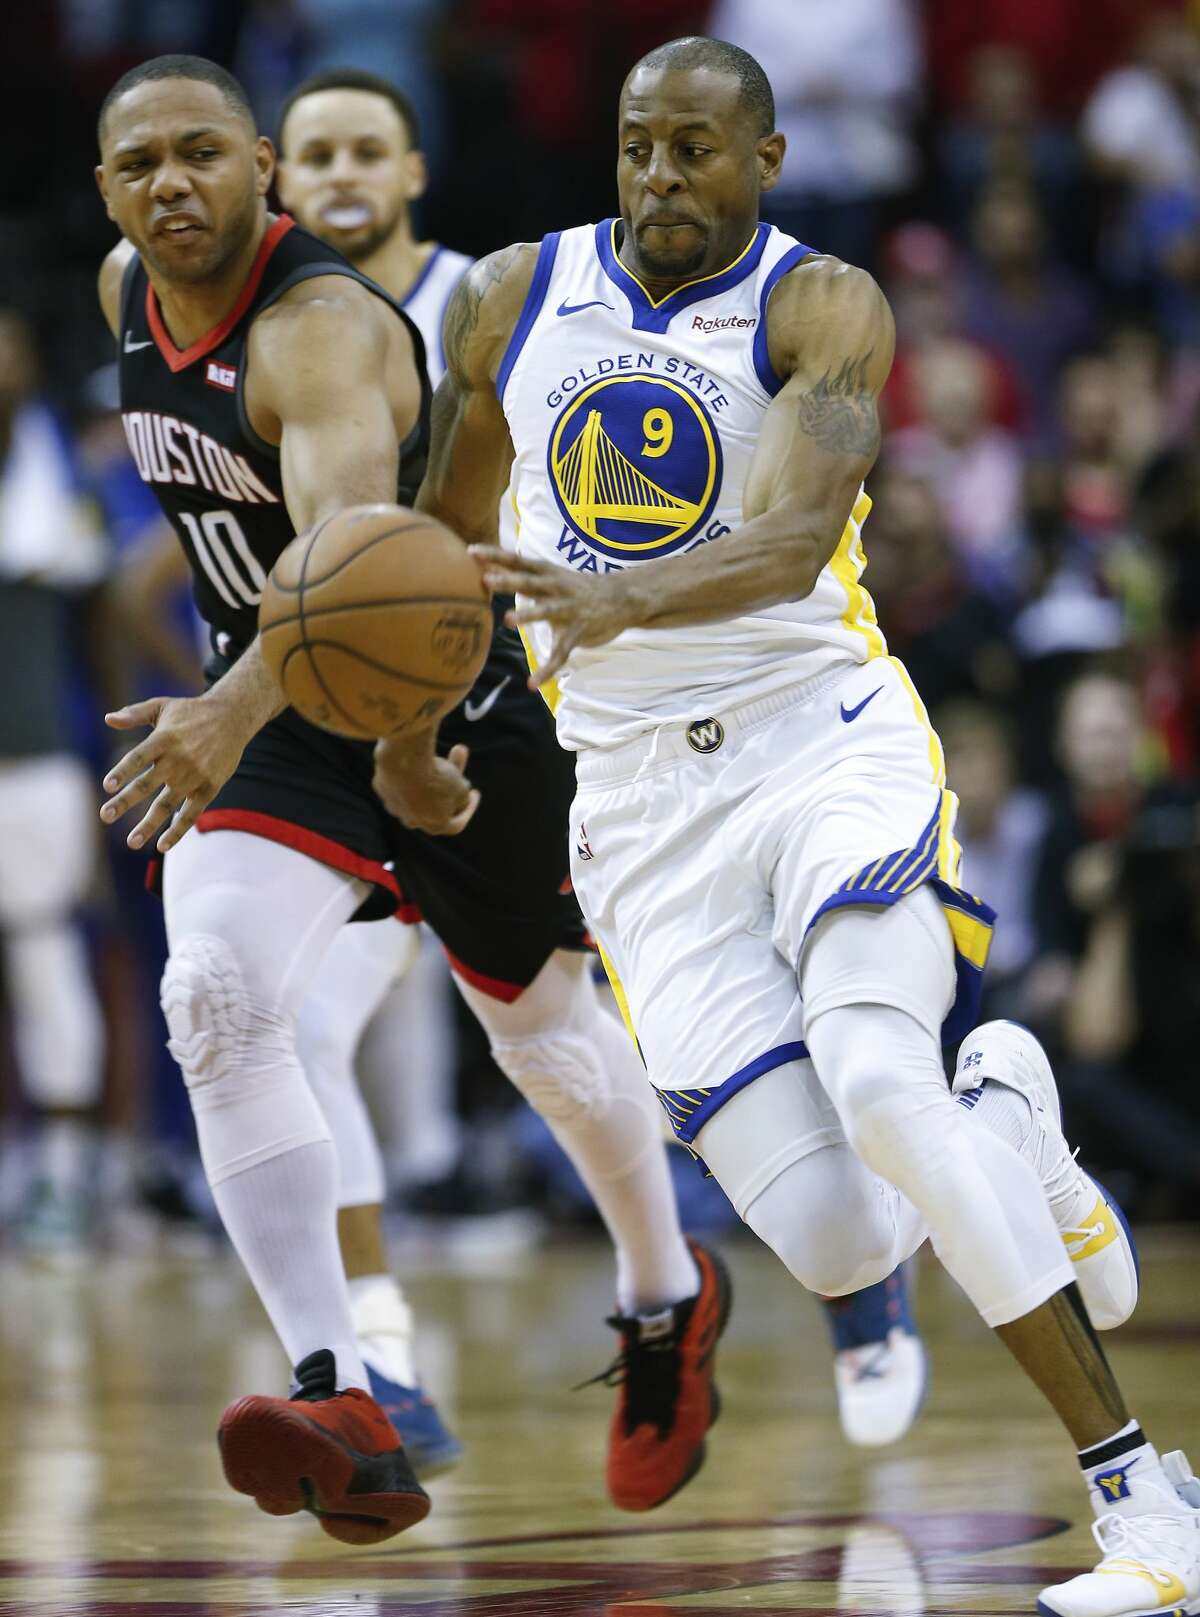 Golden State Warriors guard Andre Iguodala (9) and Houston Rockets guard Eric Gordon (10) chase after a loose ball knocked past half court after James Harden missed a free throw near the end of the fourth quarter of an NBA basketball game at Toyota Center on Wednesday, March 13, 2019, in Houston.